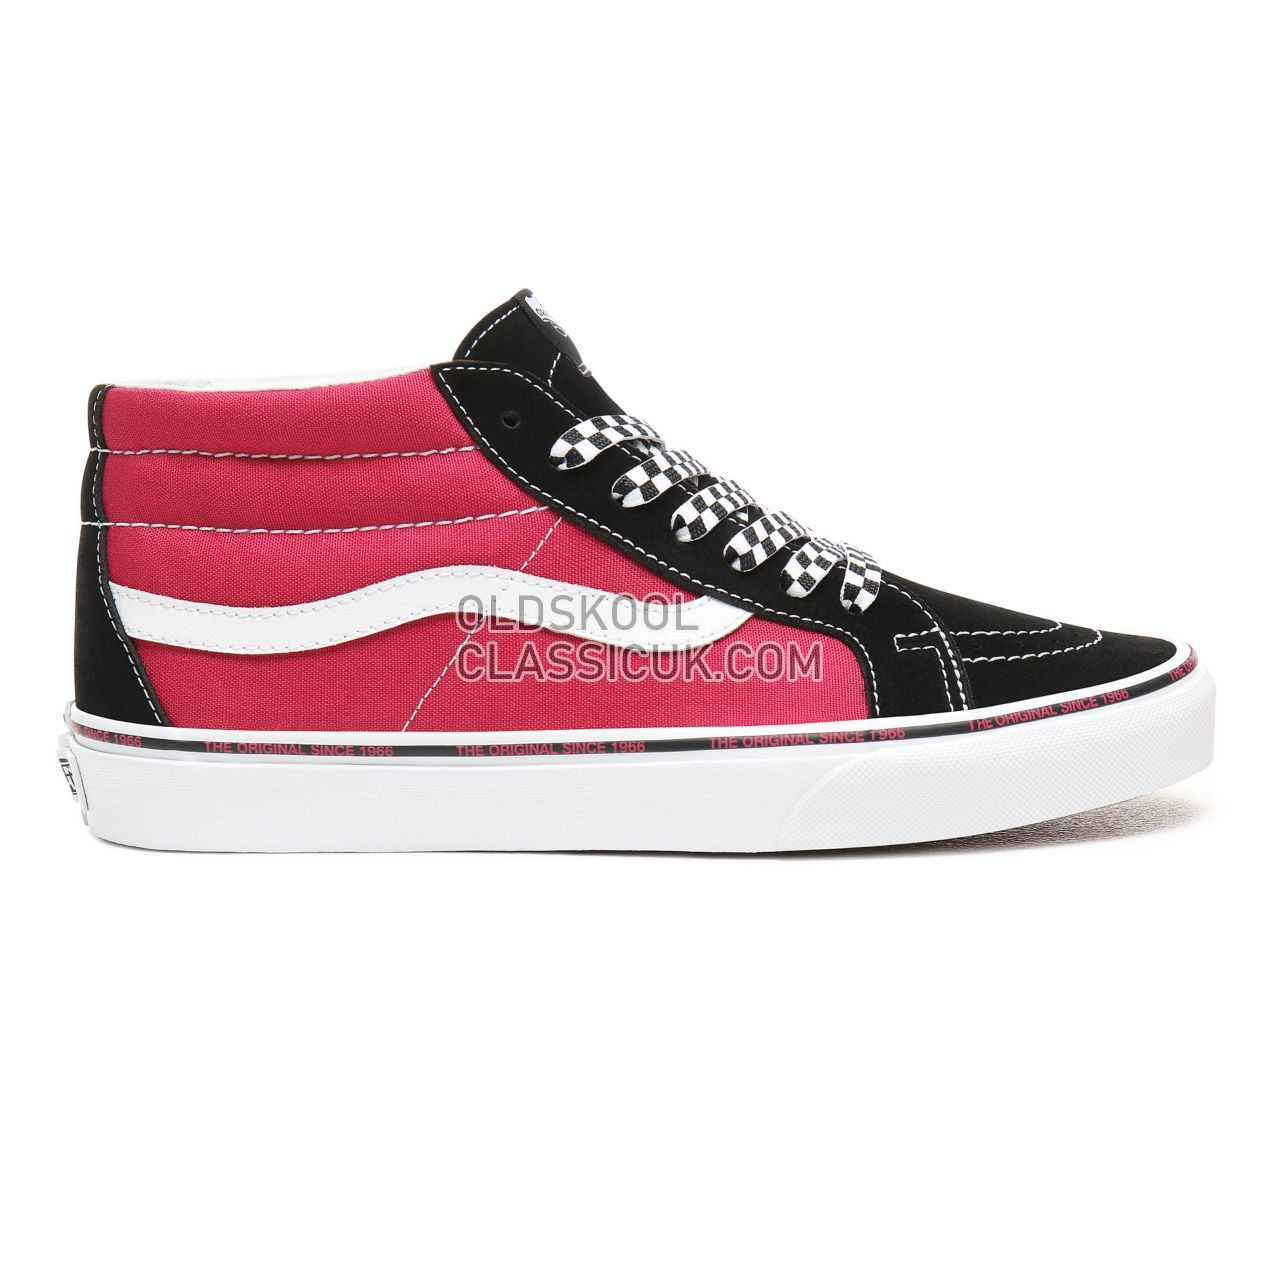 0b891165f8 Vans Sk8-Mid Reissue Sneakers Mens Jazzy Black True White VN0A391FS1S Shoes  ...